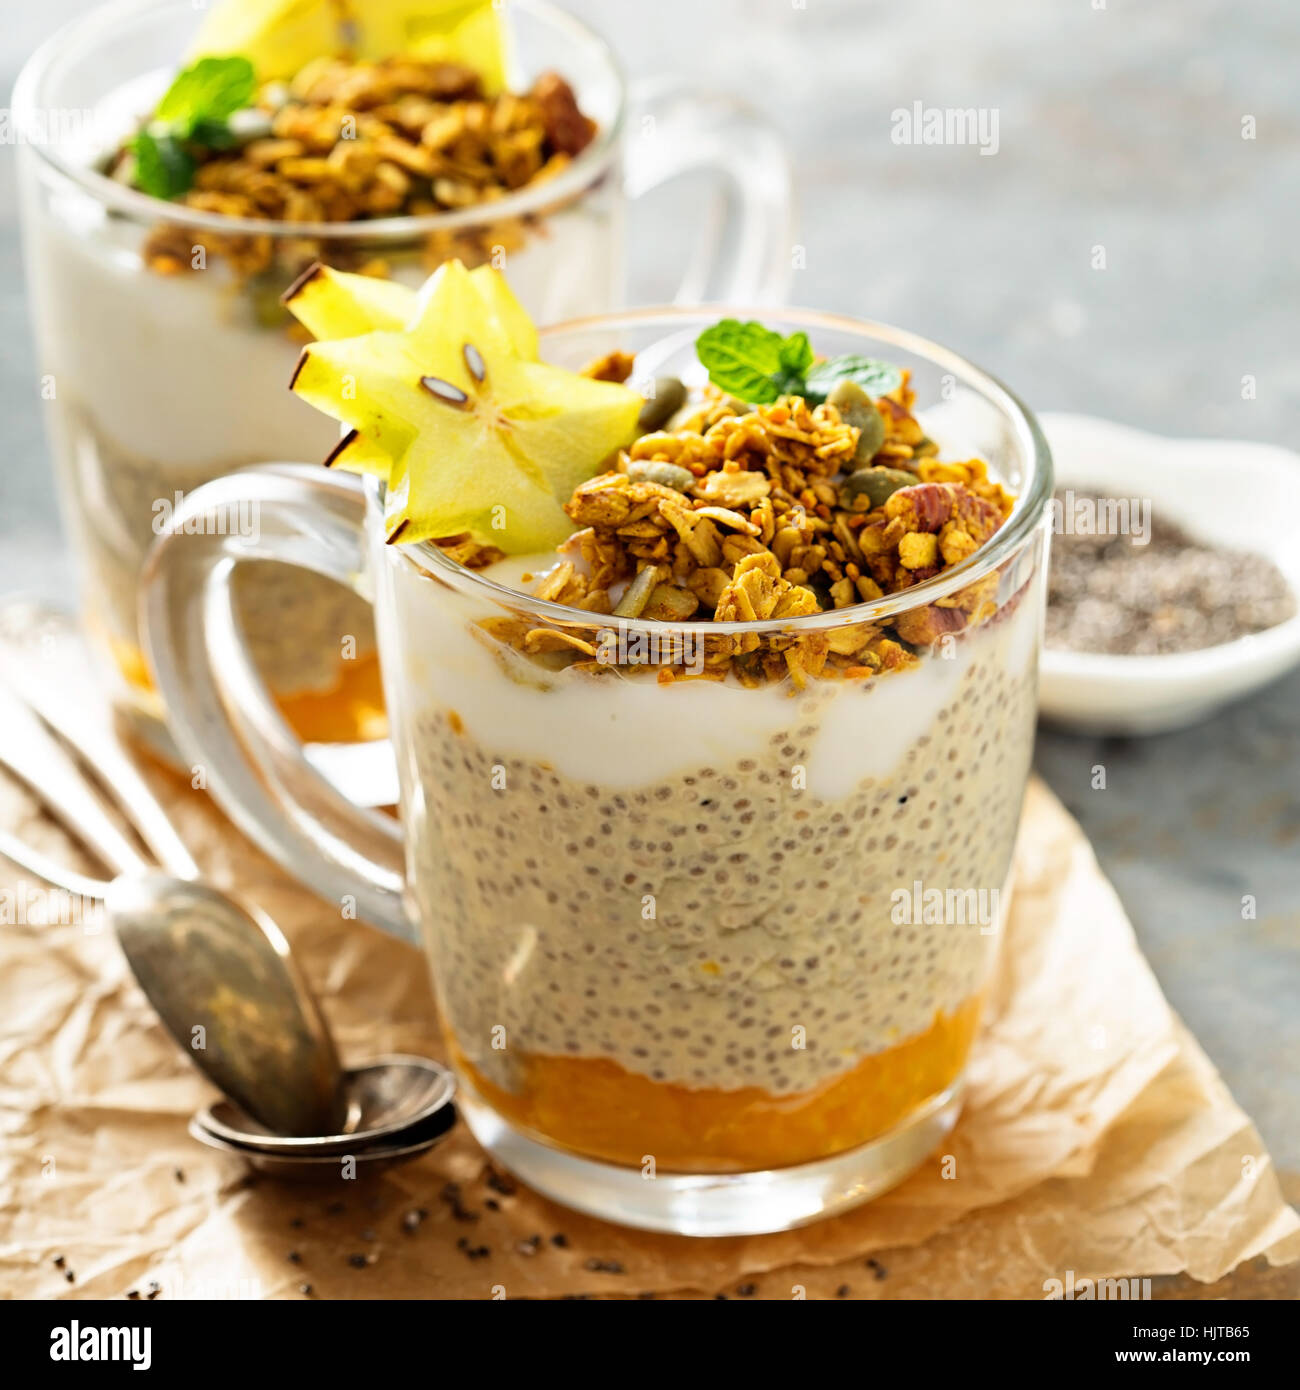 Chia pudding aux fruits exotiques et granola Photo Stock